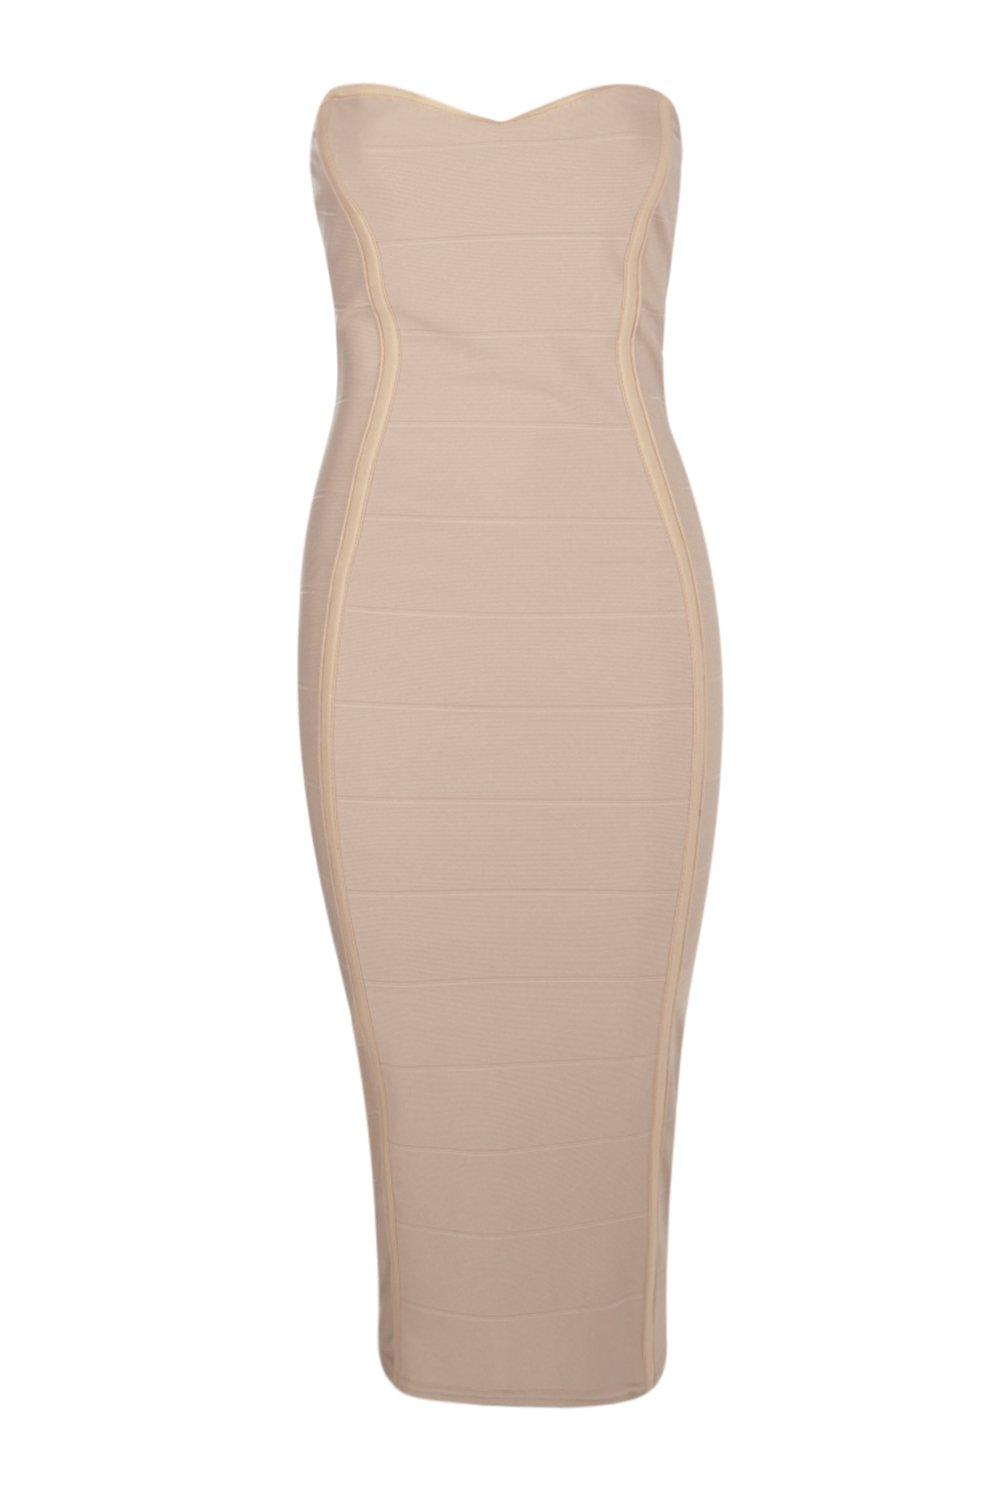 1deb6688540a Boohoo-Womens-Gia-Bandeau-Bandage-Midi-Bodycon-Dress thumbnail